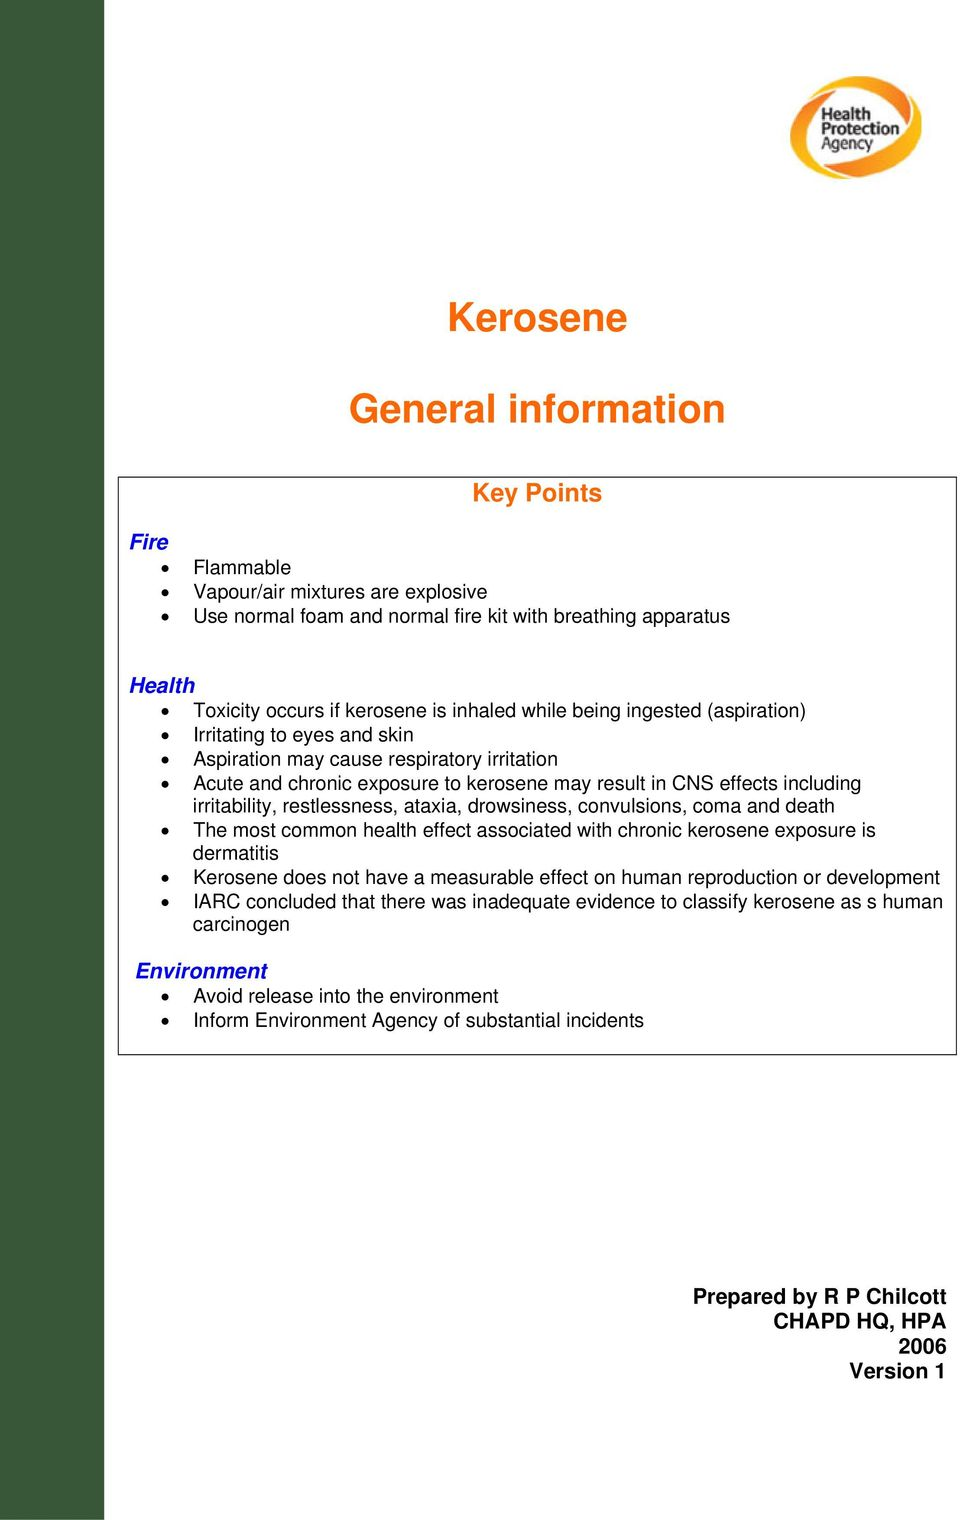 restlessness, ataxia, drowsiness, convulsions, coma and death The most common health effect associated with chronic kerosene exposure is dermatitis Kerosene does not have a measurable effect on human